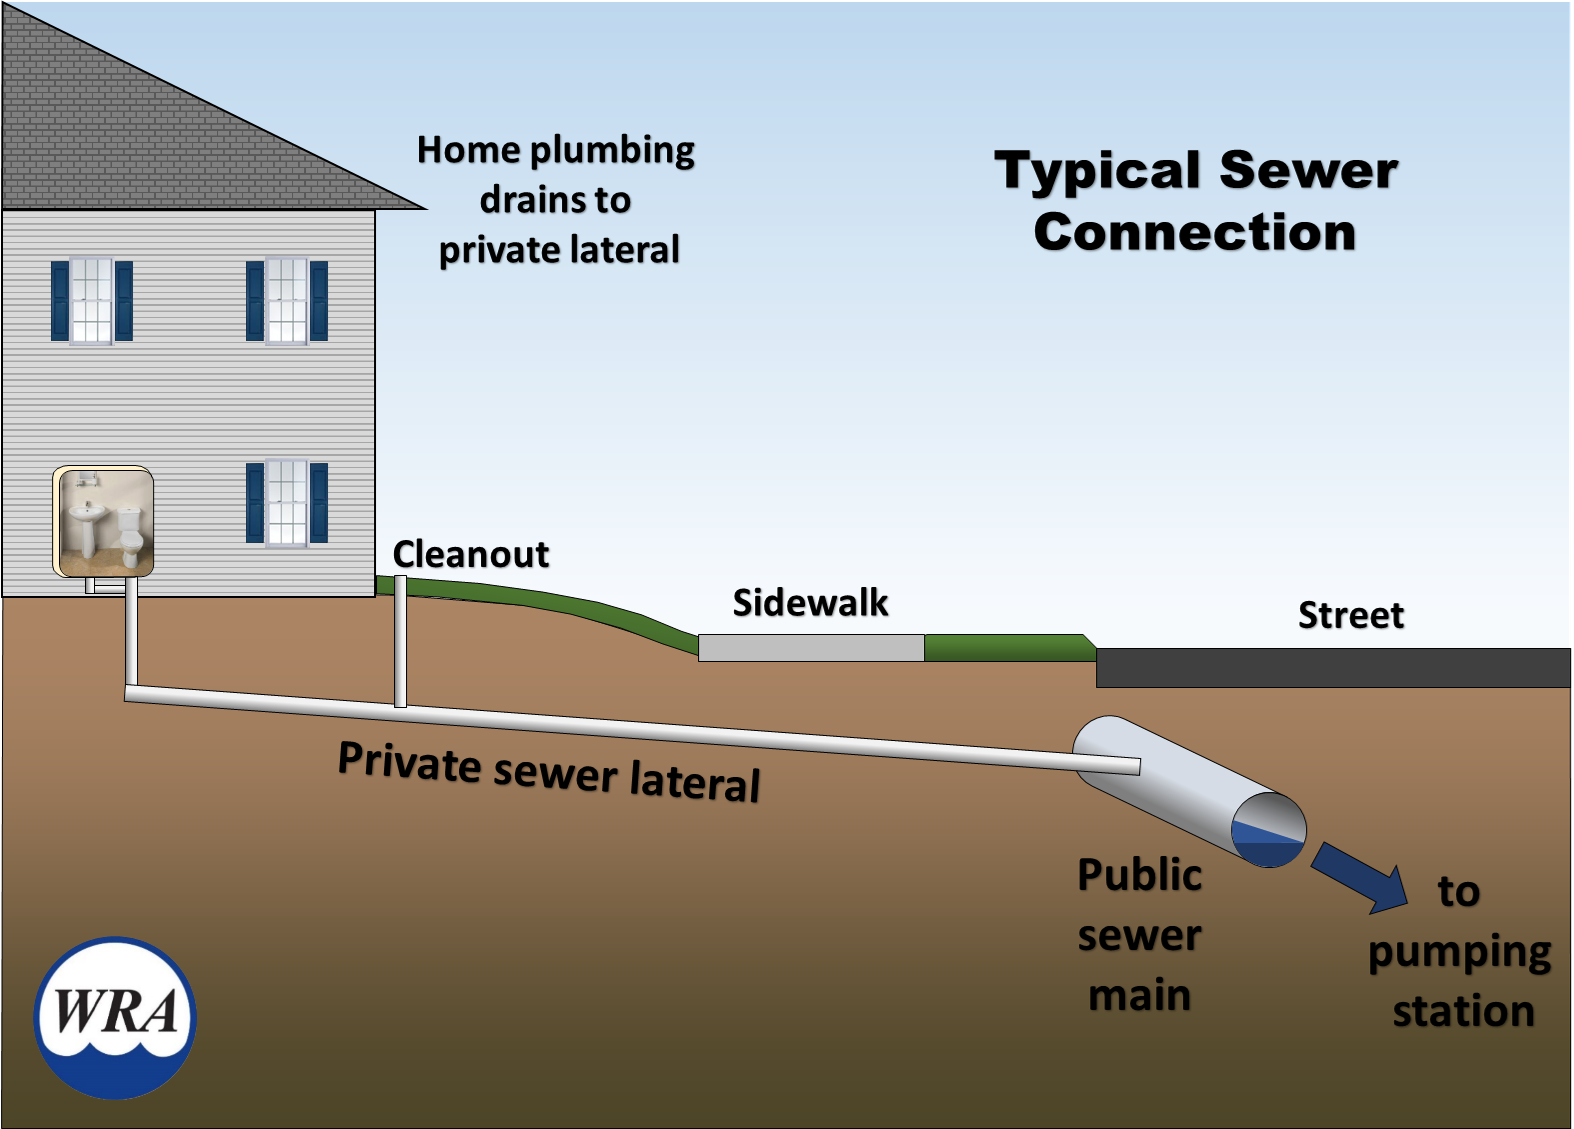 A cross-sectional diagram of a typical residential sewer connection.